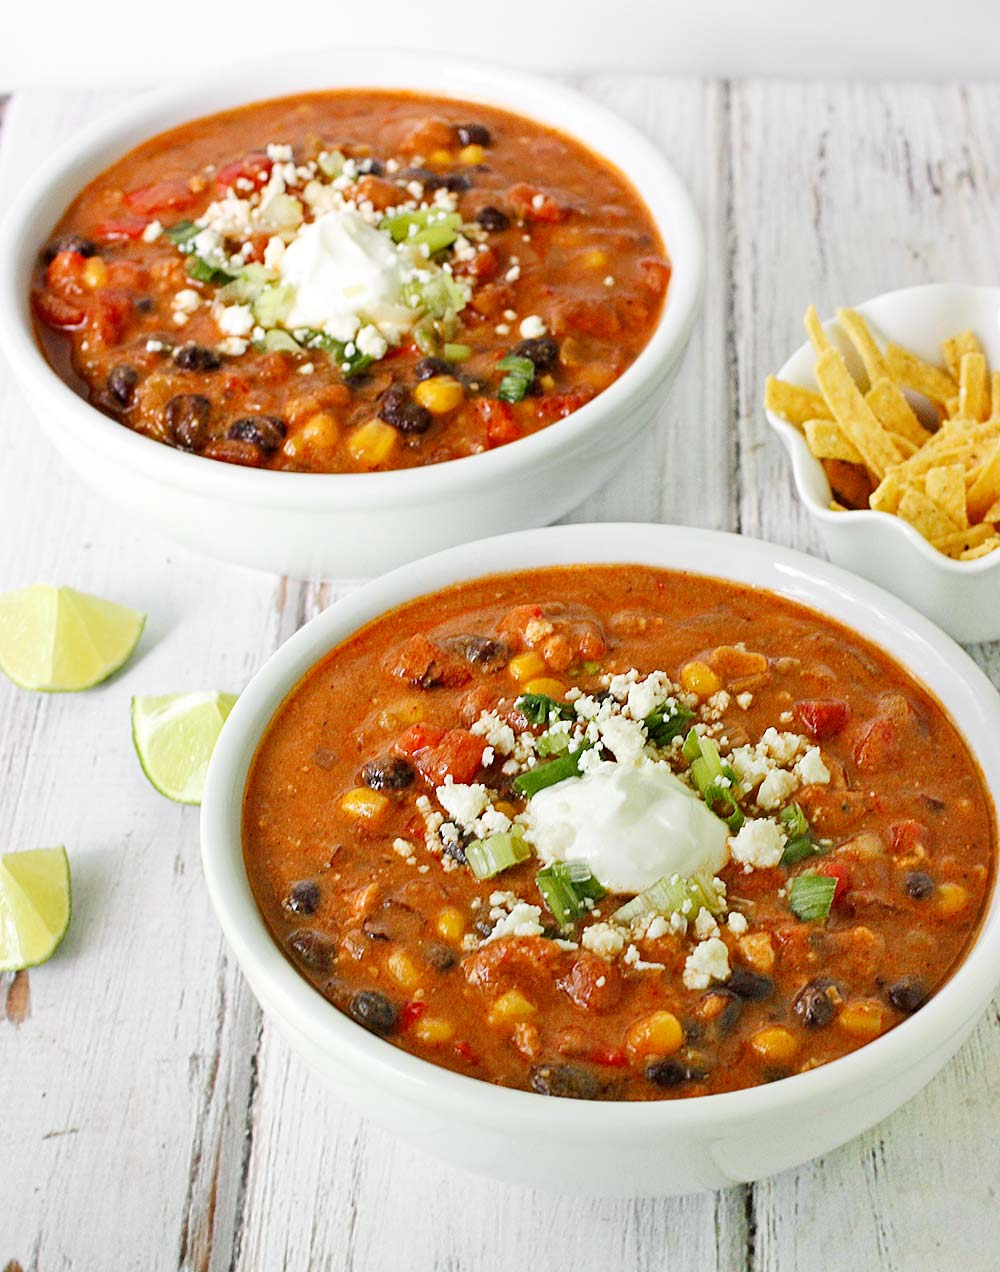 Sausage & Black Bean Enchilada Soup from Soupaddict.com